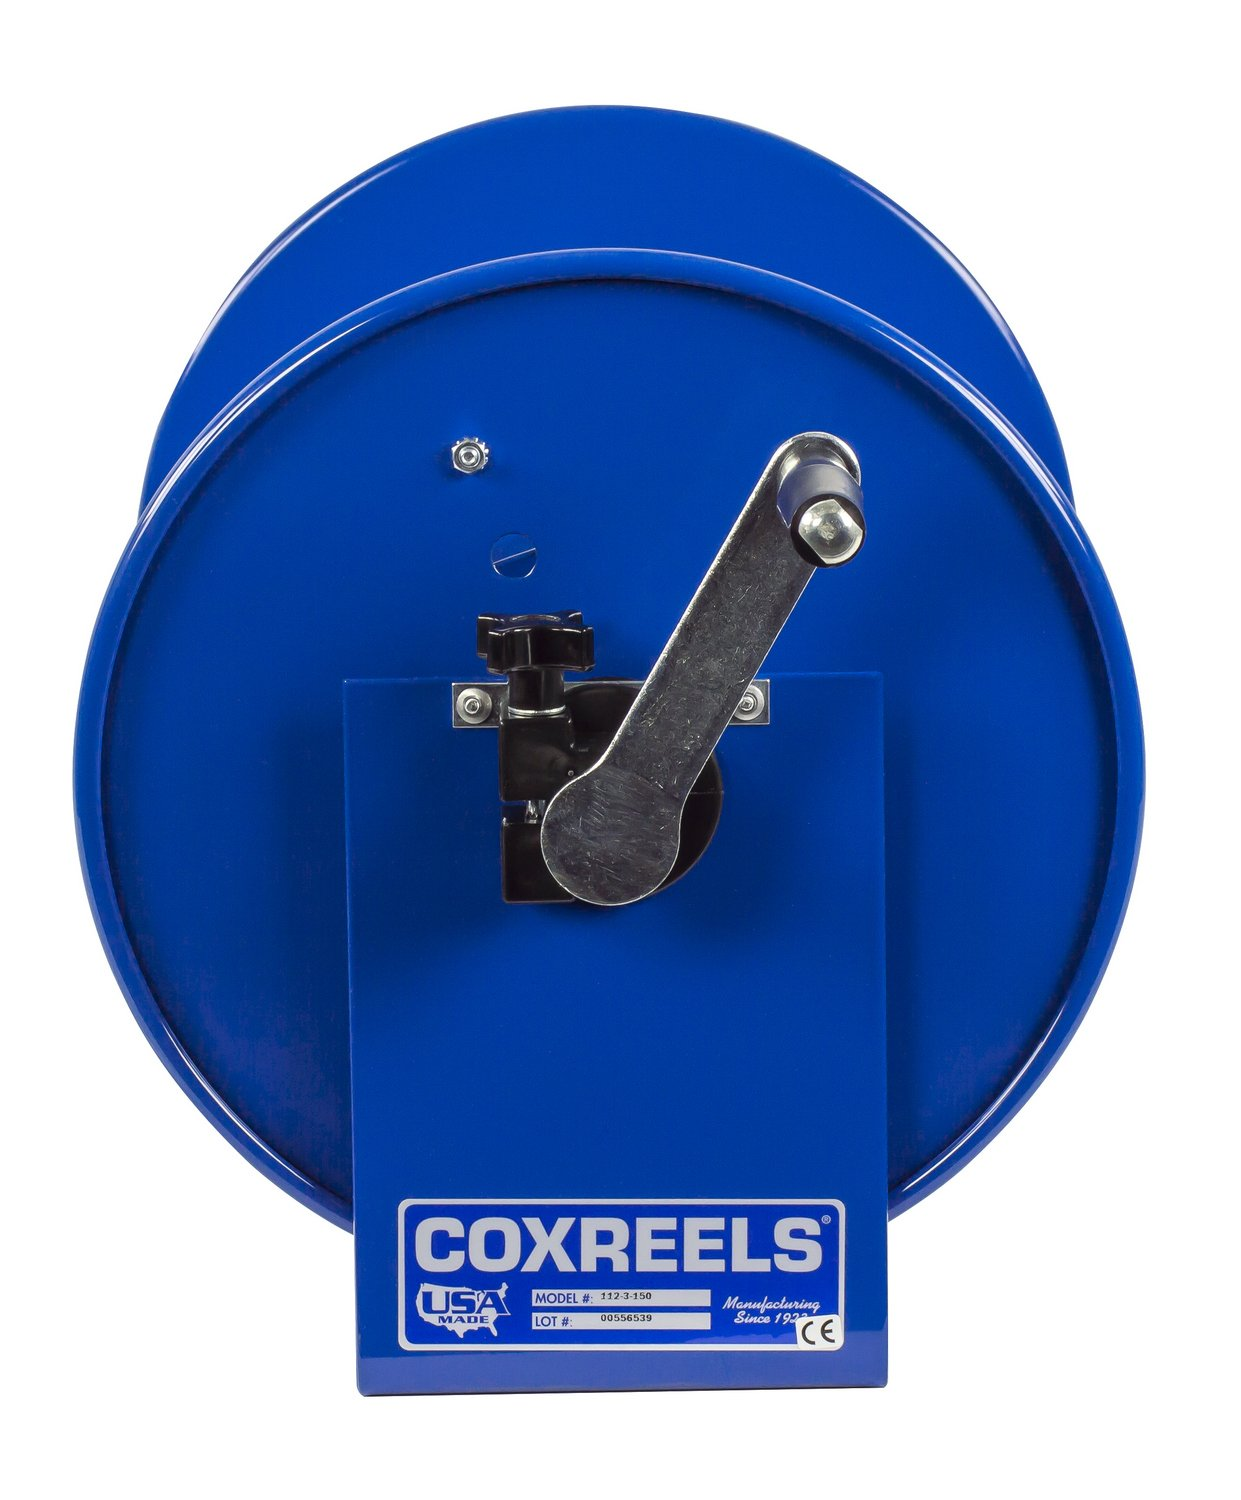 Coxreels 117-3-250 Compact Hand Crank Hose Reel, 4,000 PSI, Holds 3/8'' x 250' Length Hose, Hose Not Included by Coxreels (Image #4)